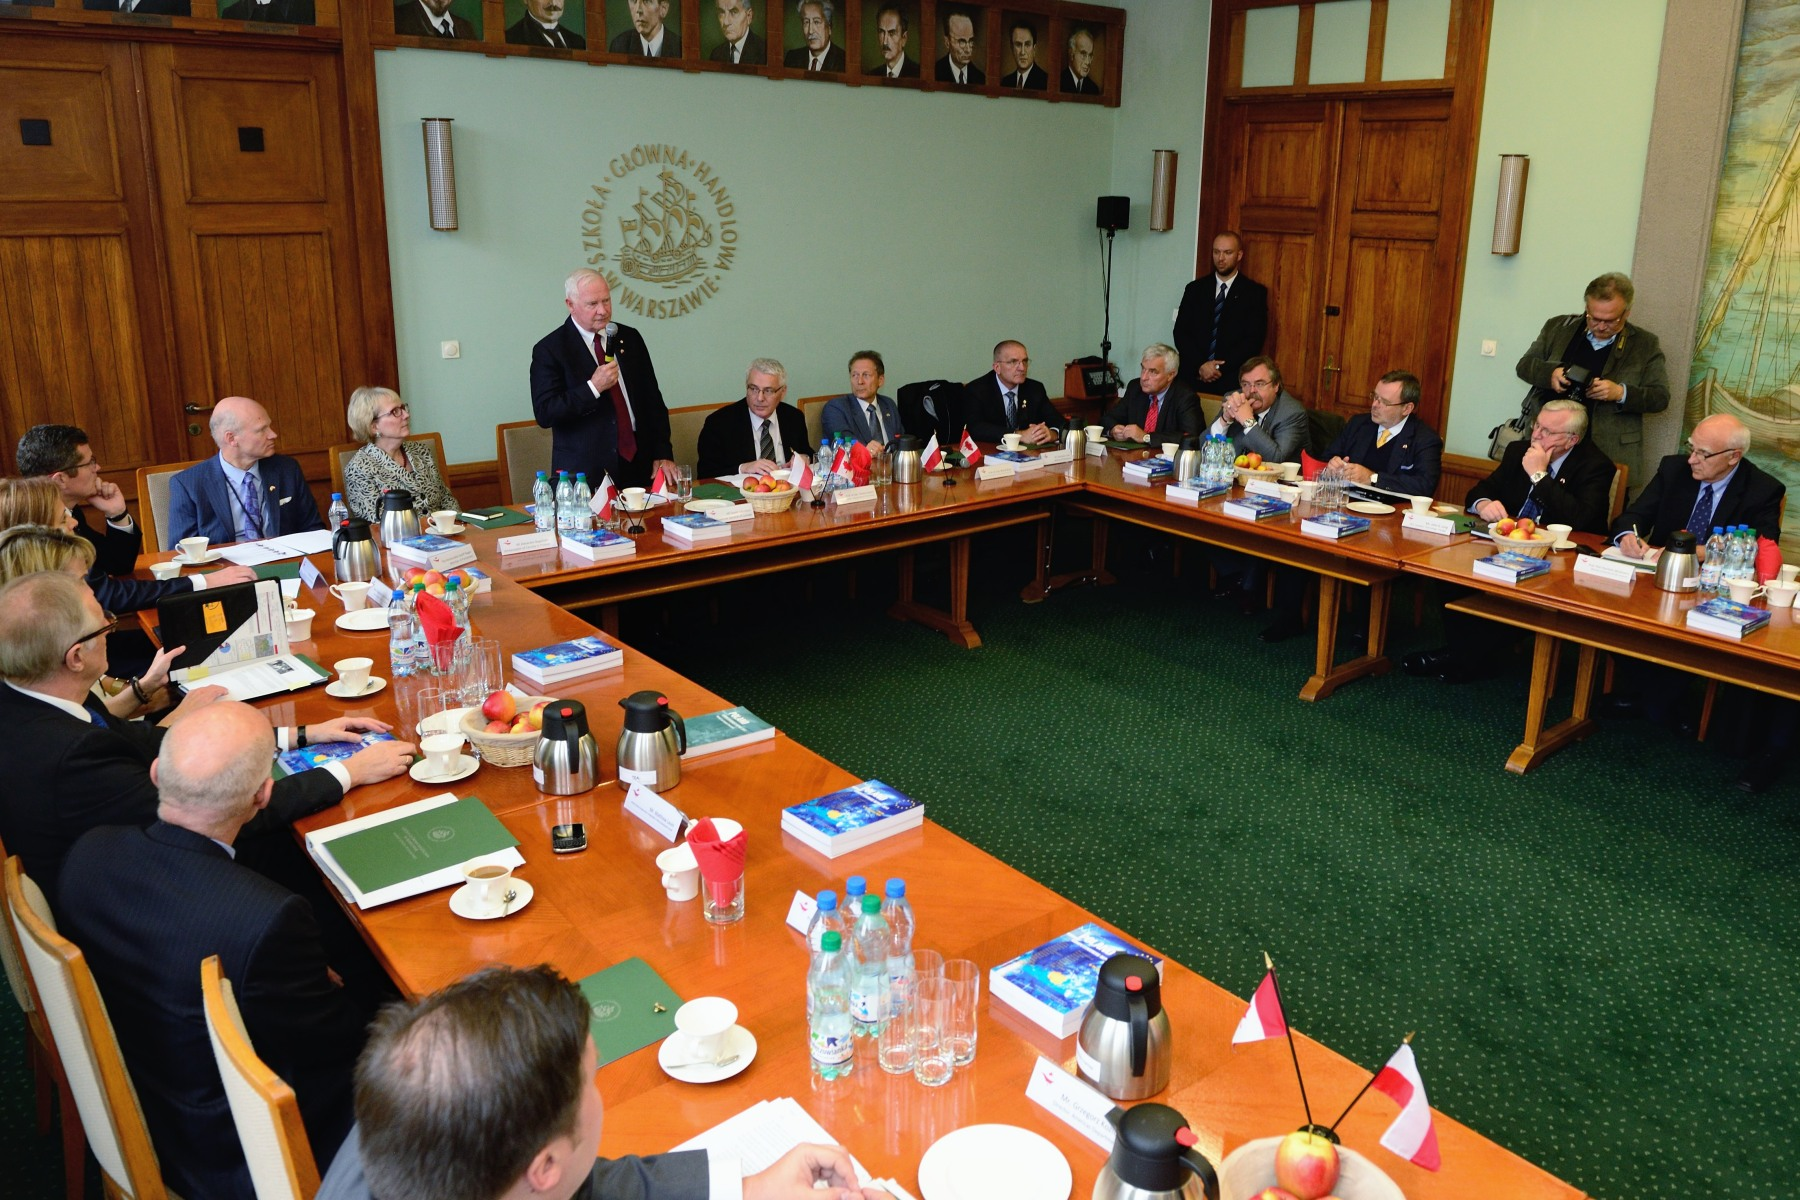 The Governor General delivered the opening remarks at a round-table discussion with rectors and senior officials of the main Warsaw-based universities. Opportunities for increased partnership and collaboration between Canadian and Polish institutions across a broad range of areas such as joint research, joint programming, academic exchange and student mobility were addressed.